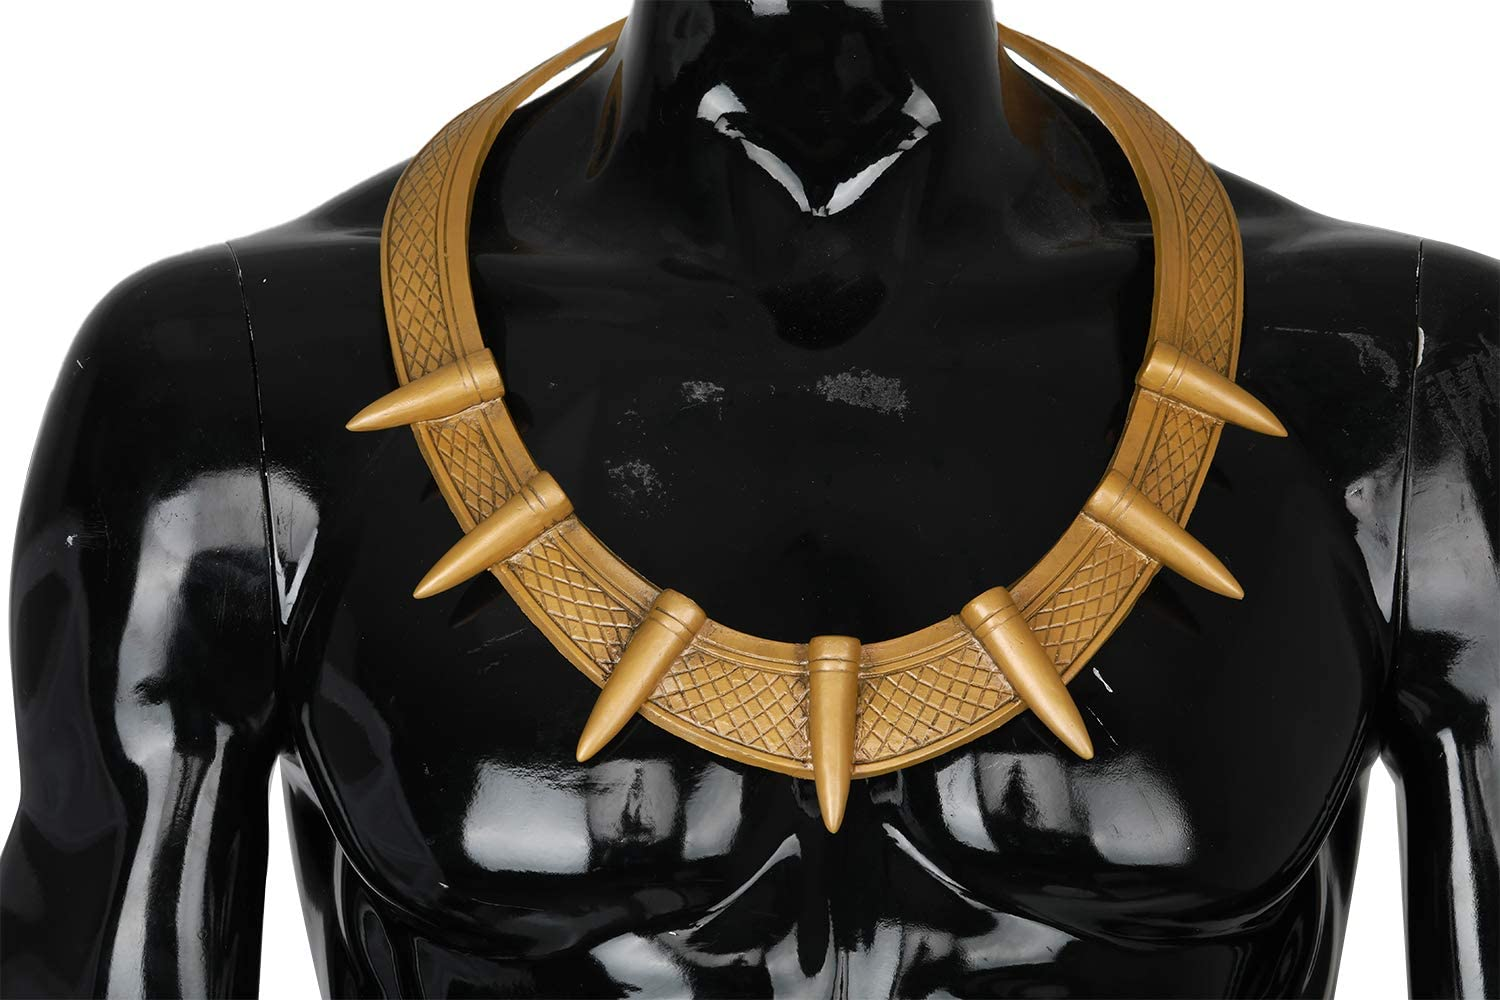 Erik Killmonger Necklace Black Panther Jewellery The Avengers Cosplay Costume Accessories Golden Latex